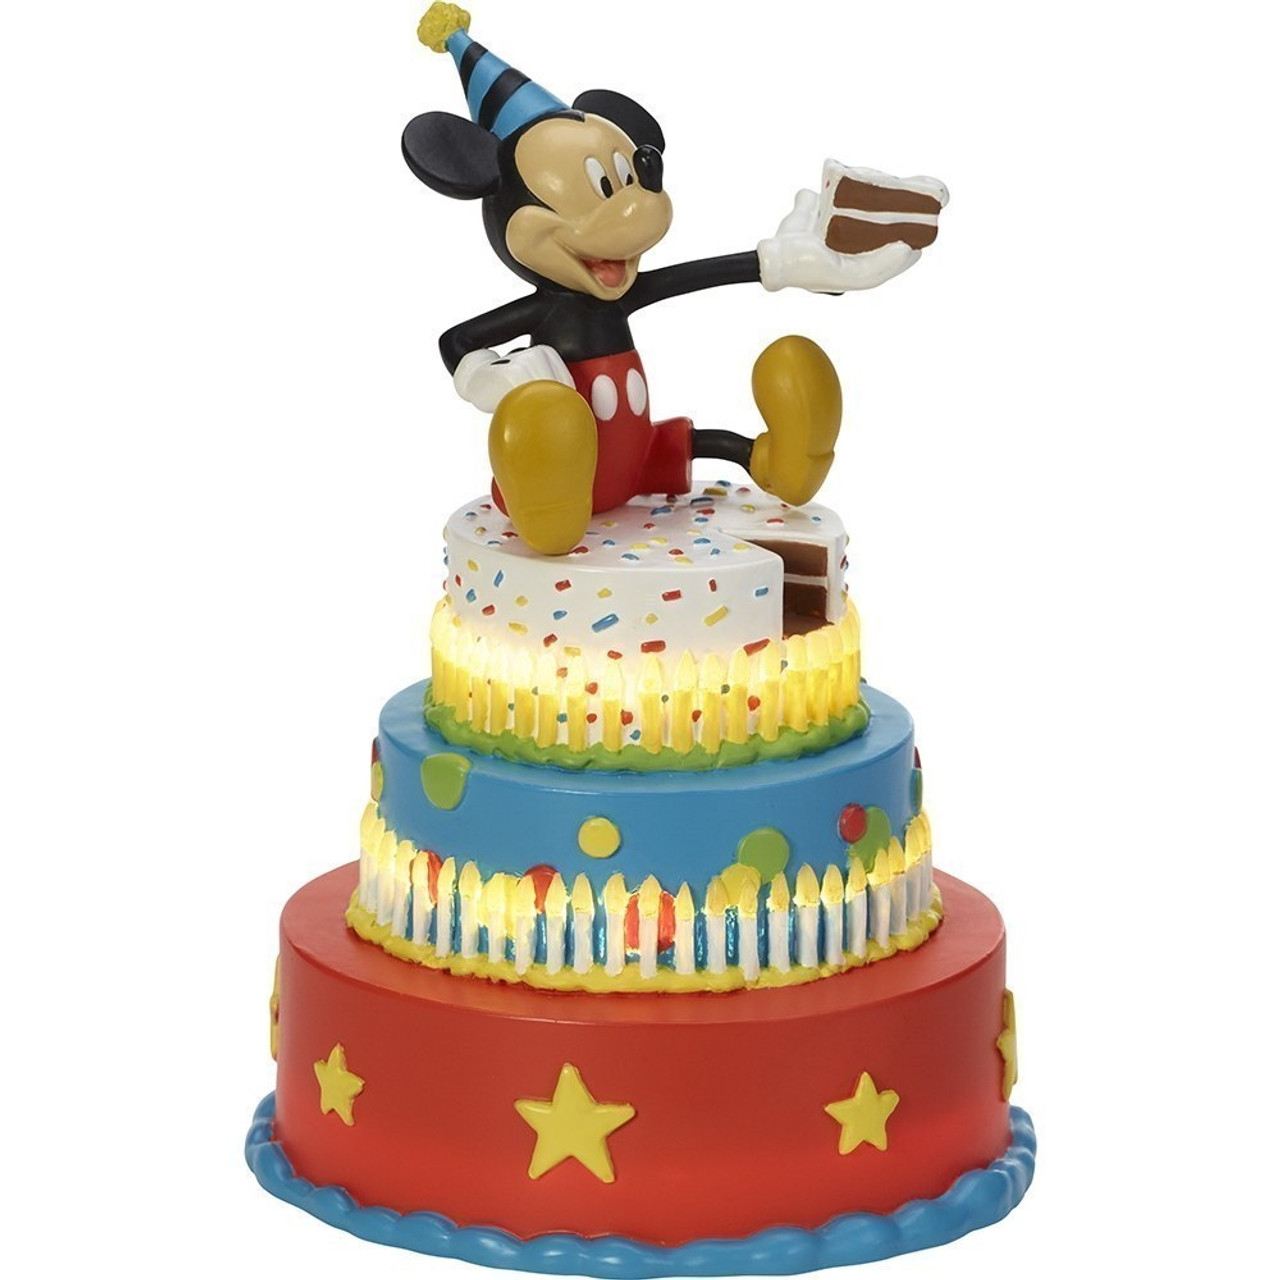 Magnificent Disney Showcase Mickey Mouse Birthday Cake Led Tabletop Figurine Funny Birthday Cards Online Fluifree Goldxyz